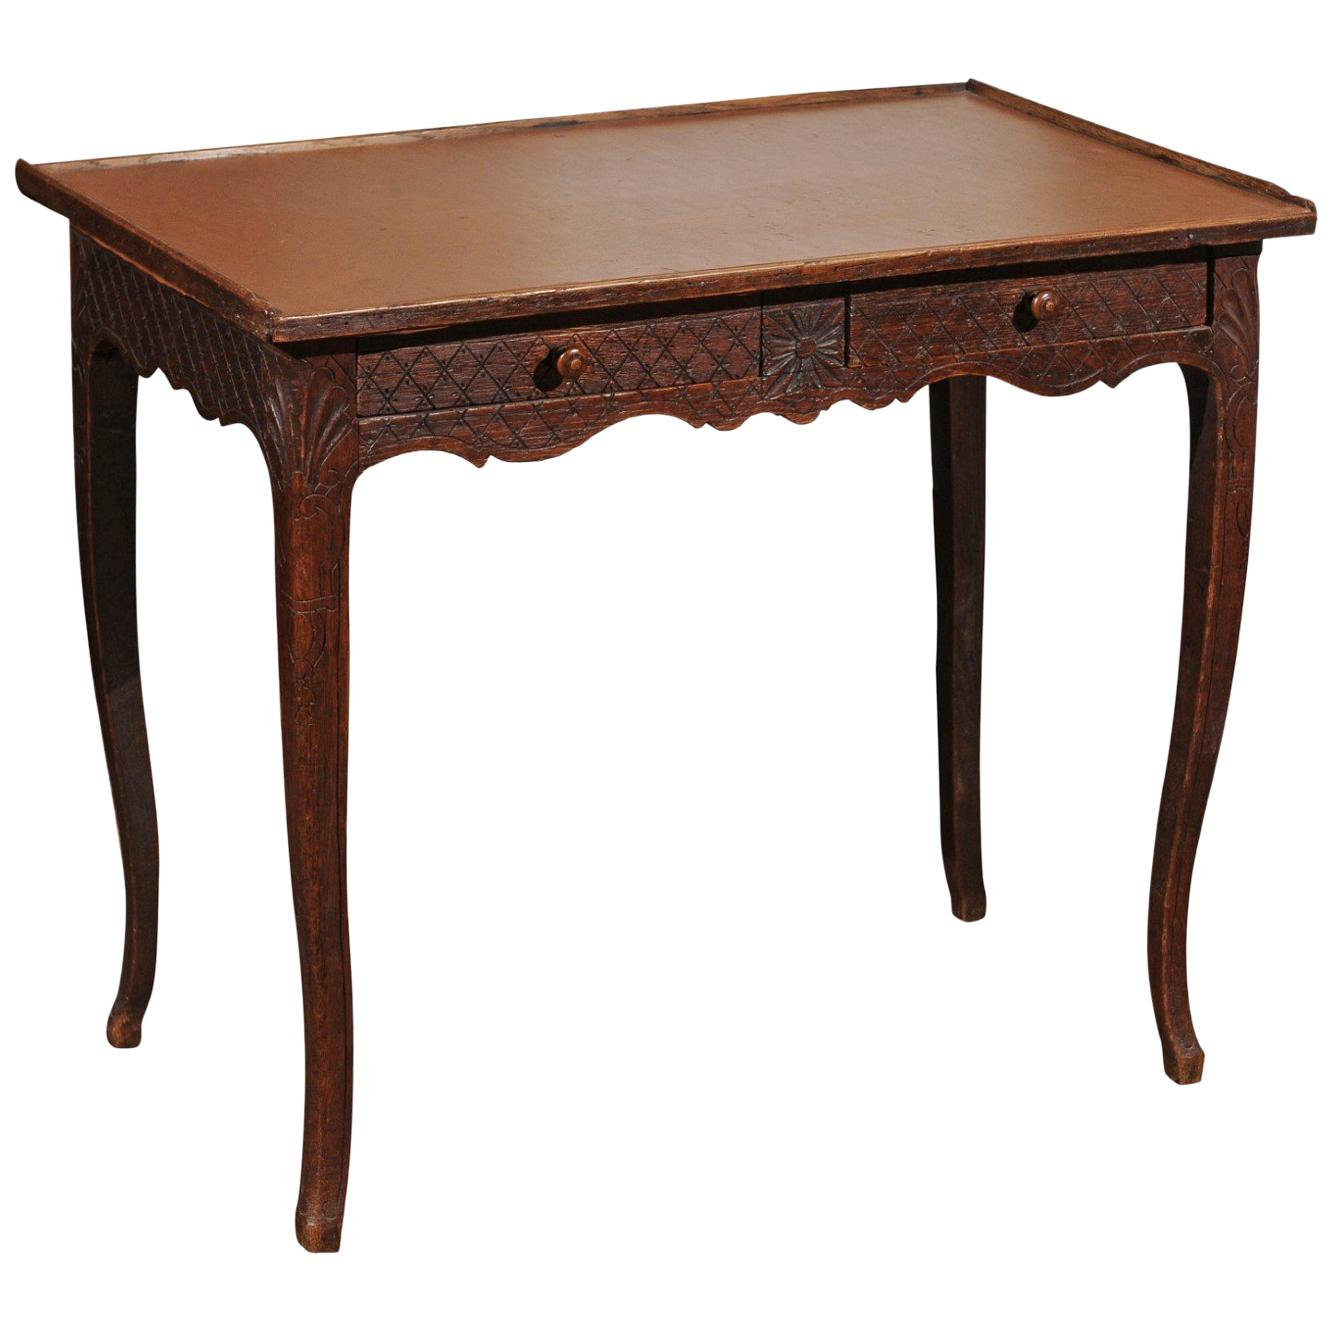 French Restauration Period Early 19th Century Oak Side Table with Diamond Motifs